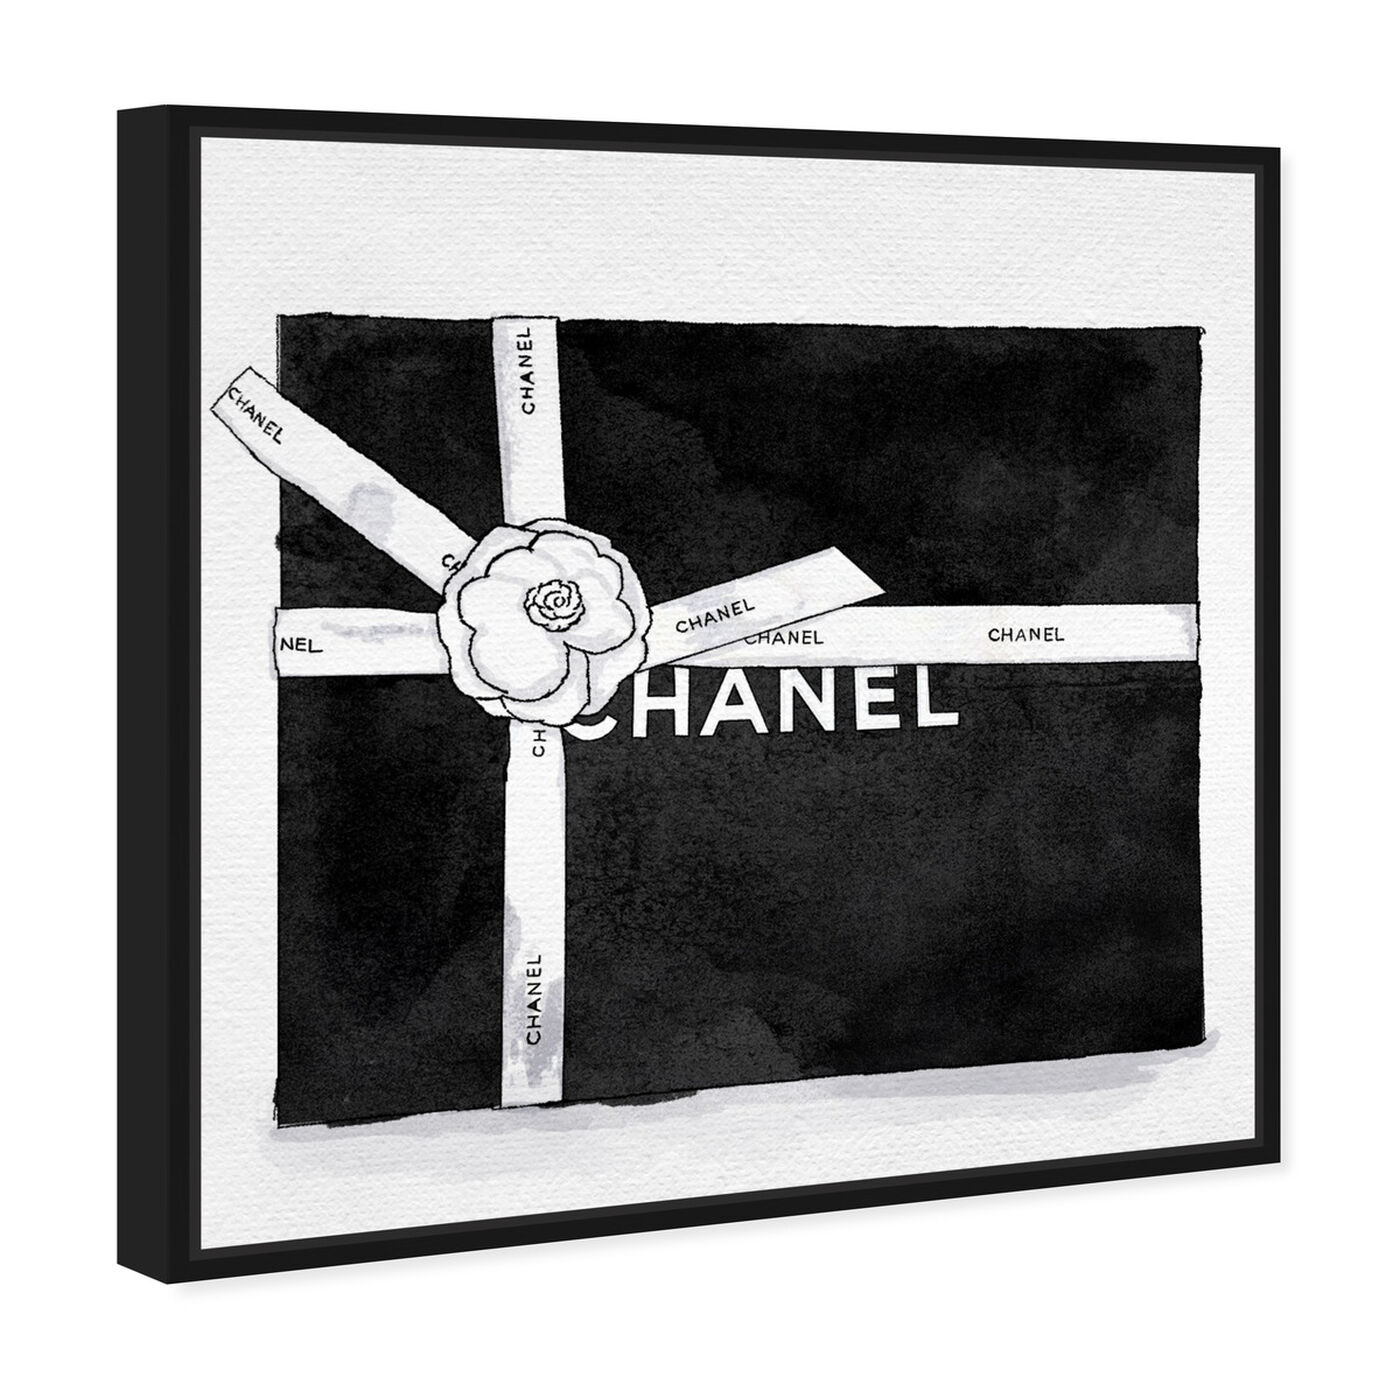 Angled view of Fashionable Gift I featuring fashion and glam and lifestyle art.